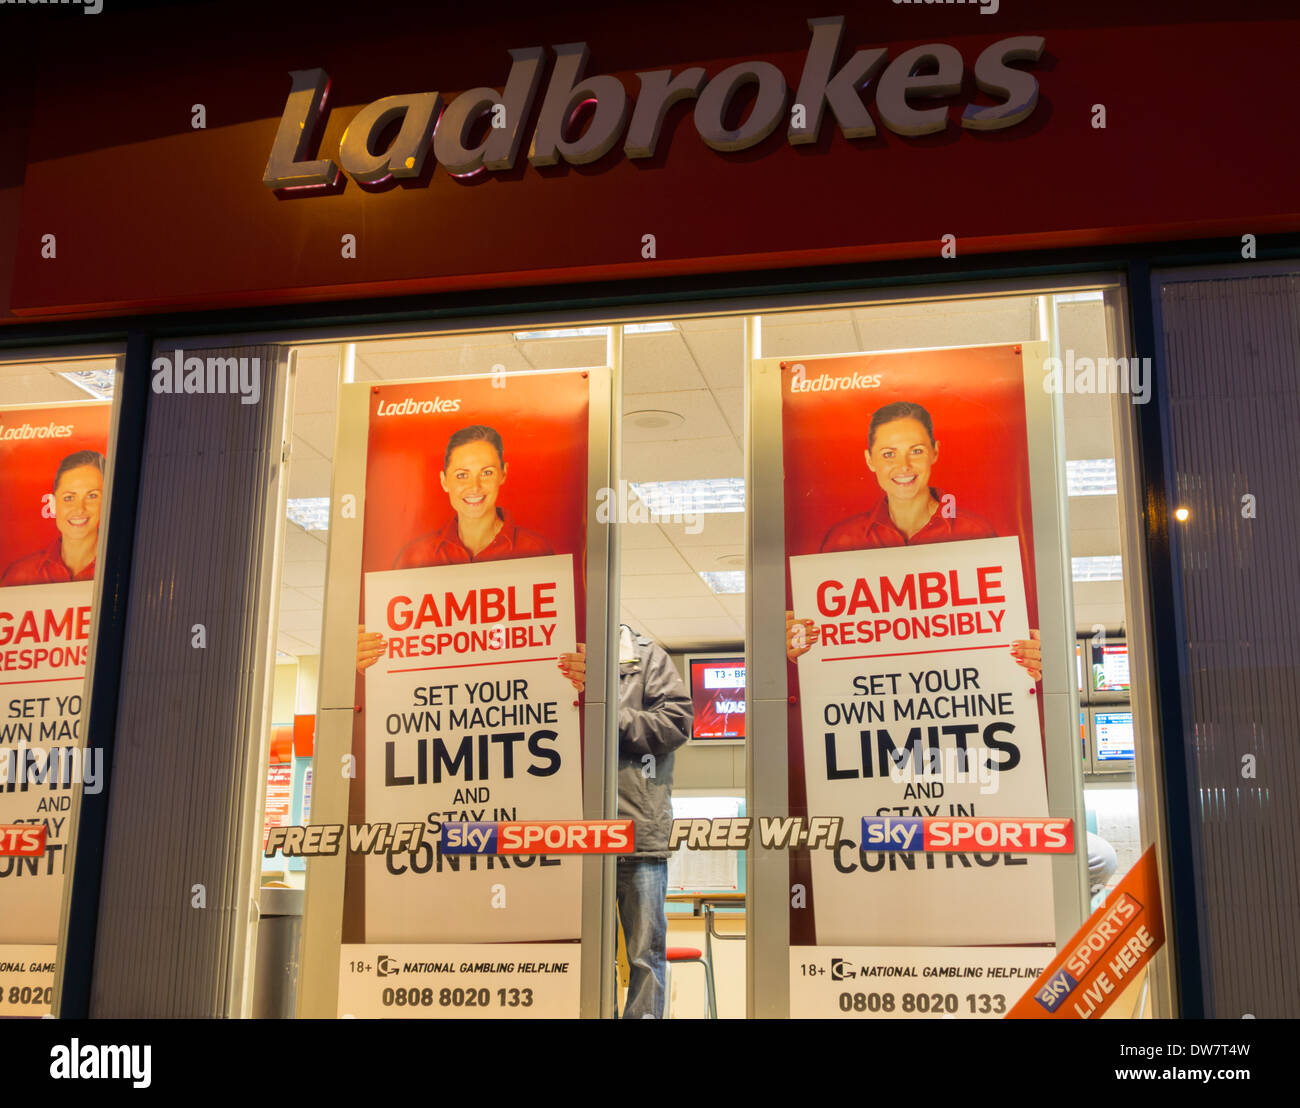 Gamble responsibly posters showing national gambling helpline number in Ladbrokes Bookmakers. - Stock Image